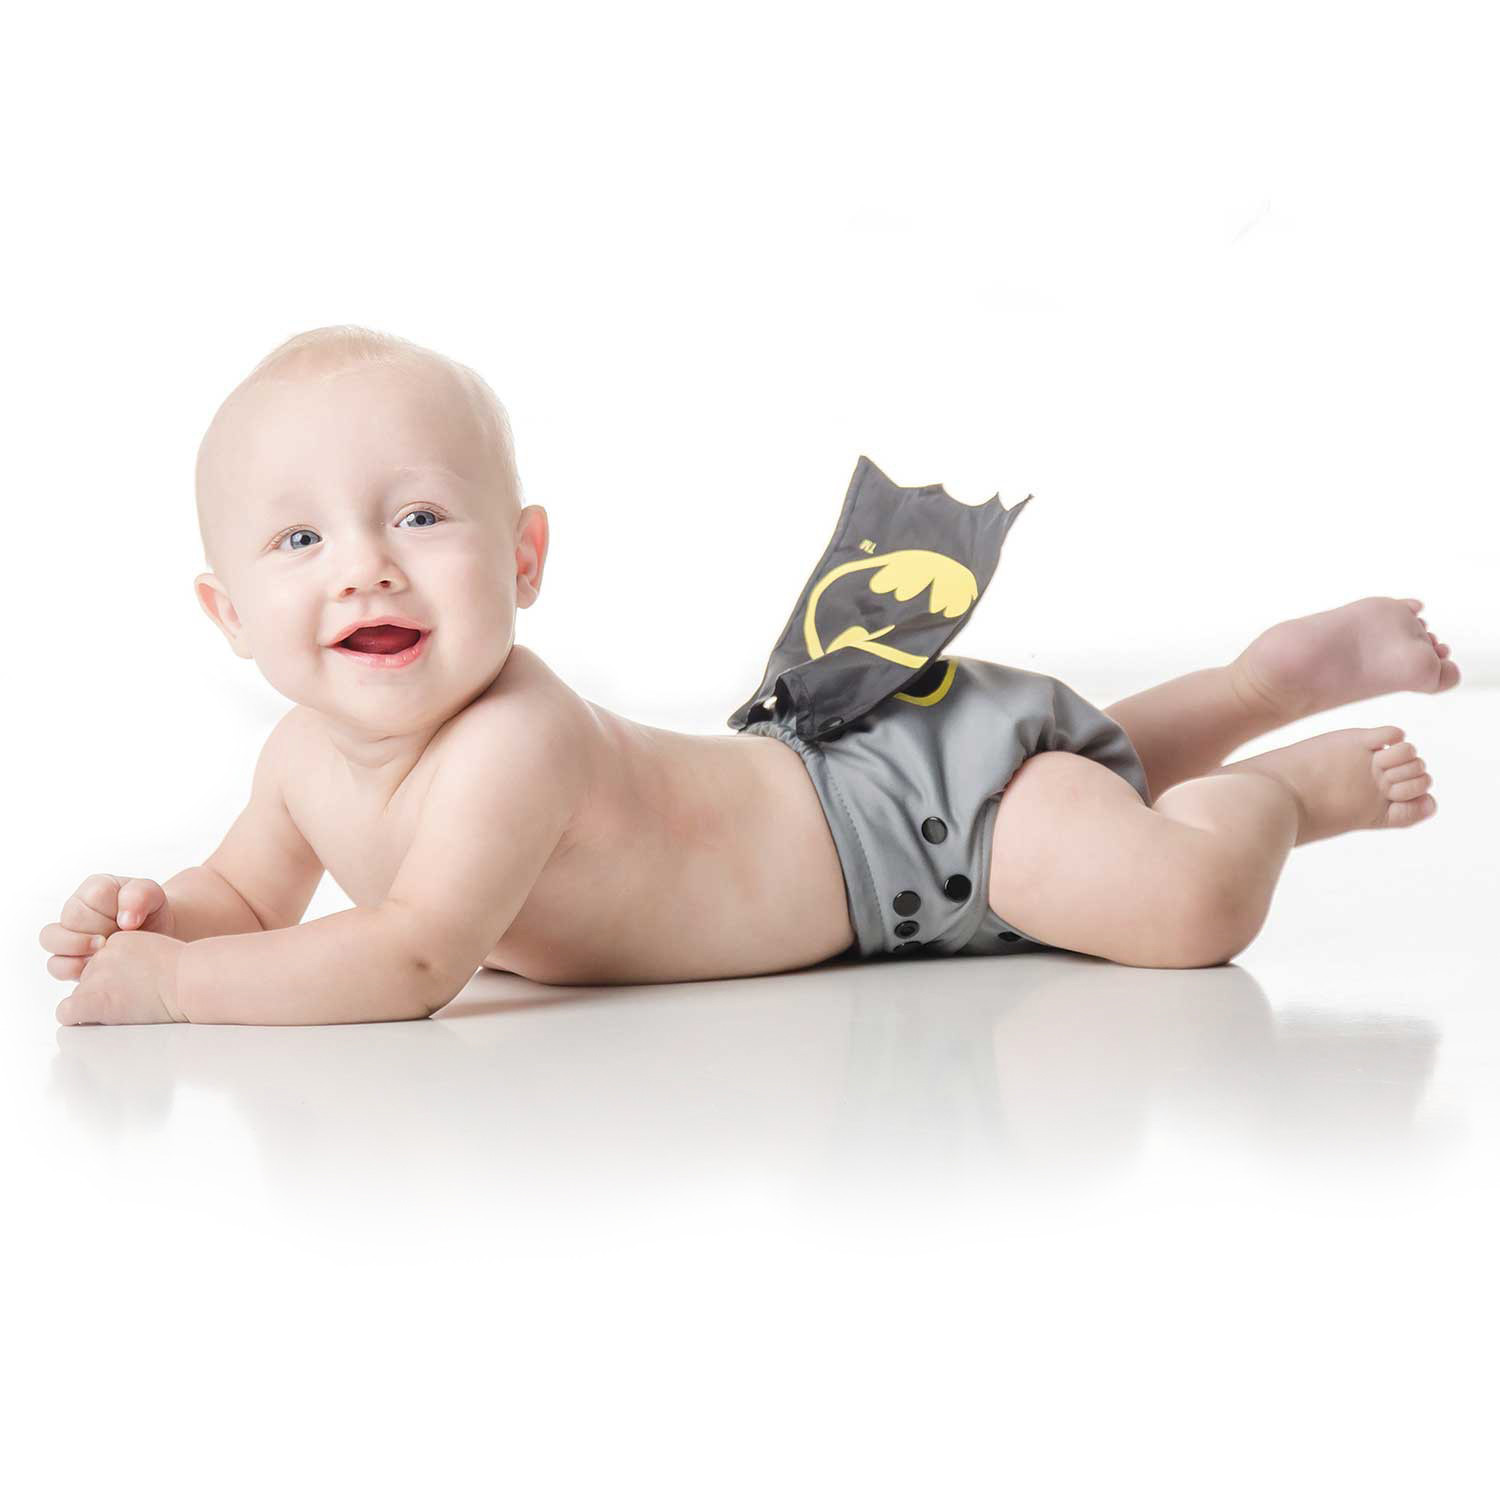 Bumkins DC Comics Snap in One Nappy with Cape - Grey Batman image